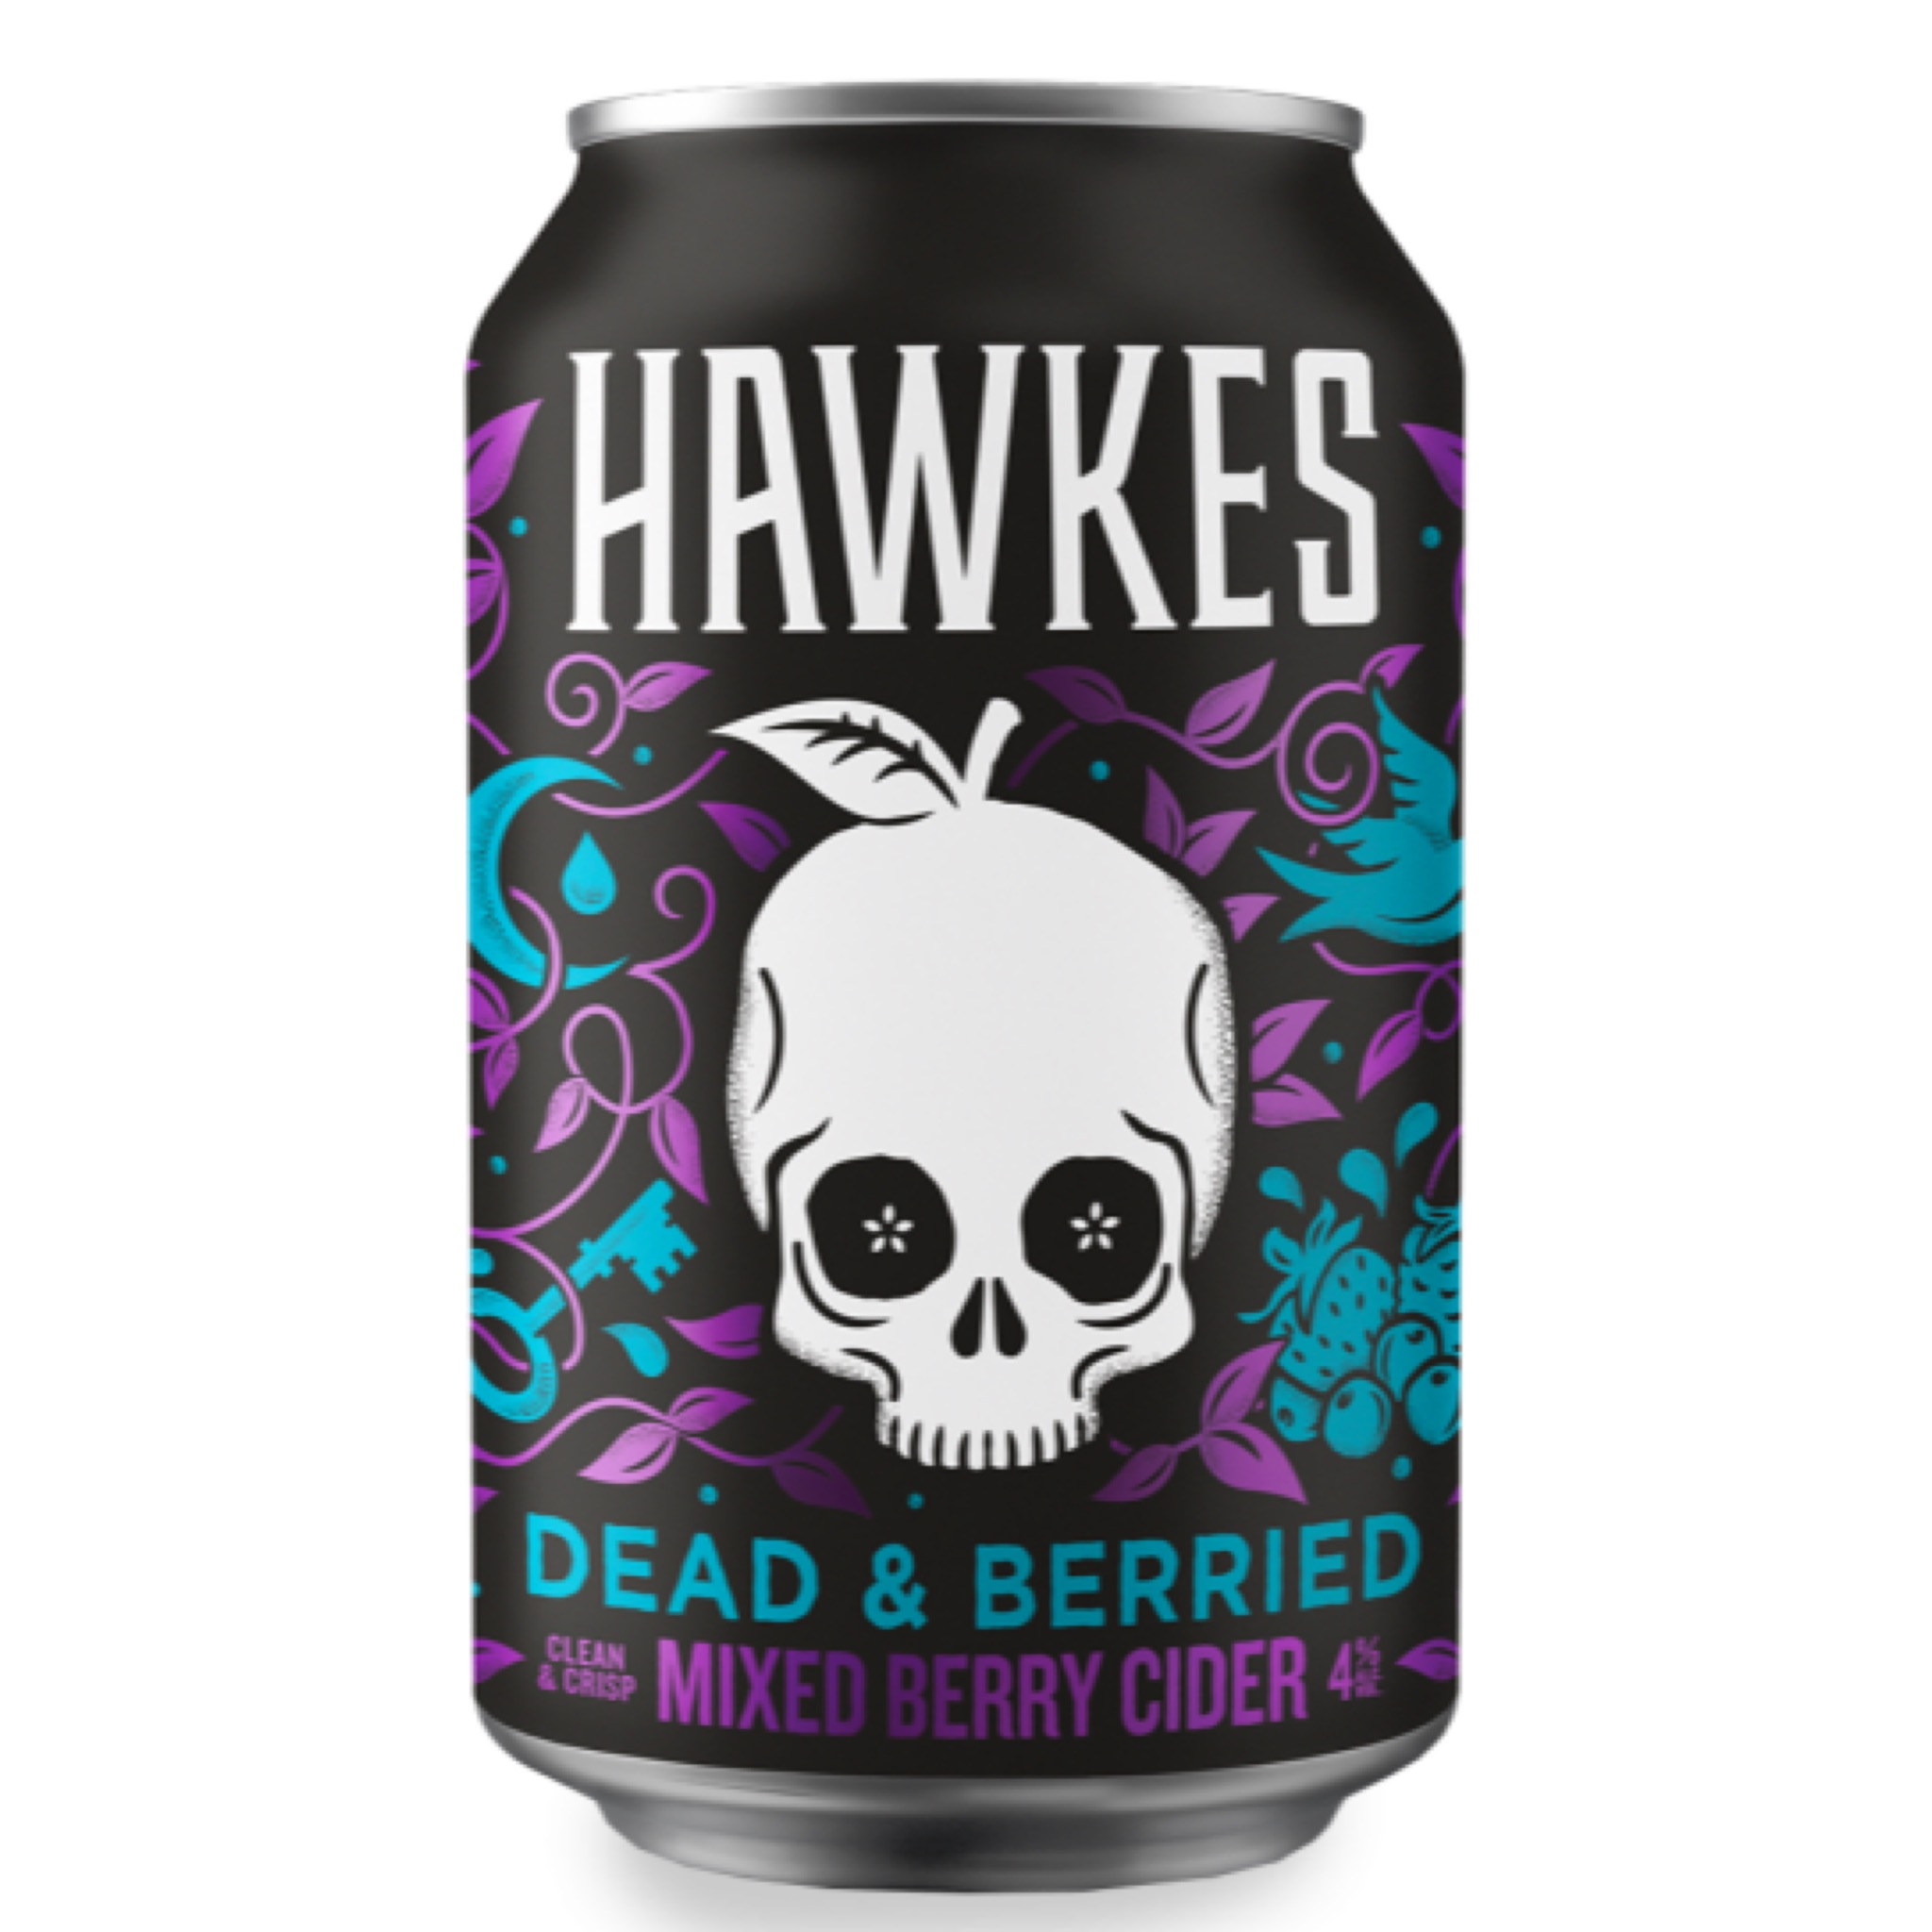 Dead & Berried Cider 4% 330ml Hawkes